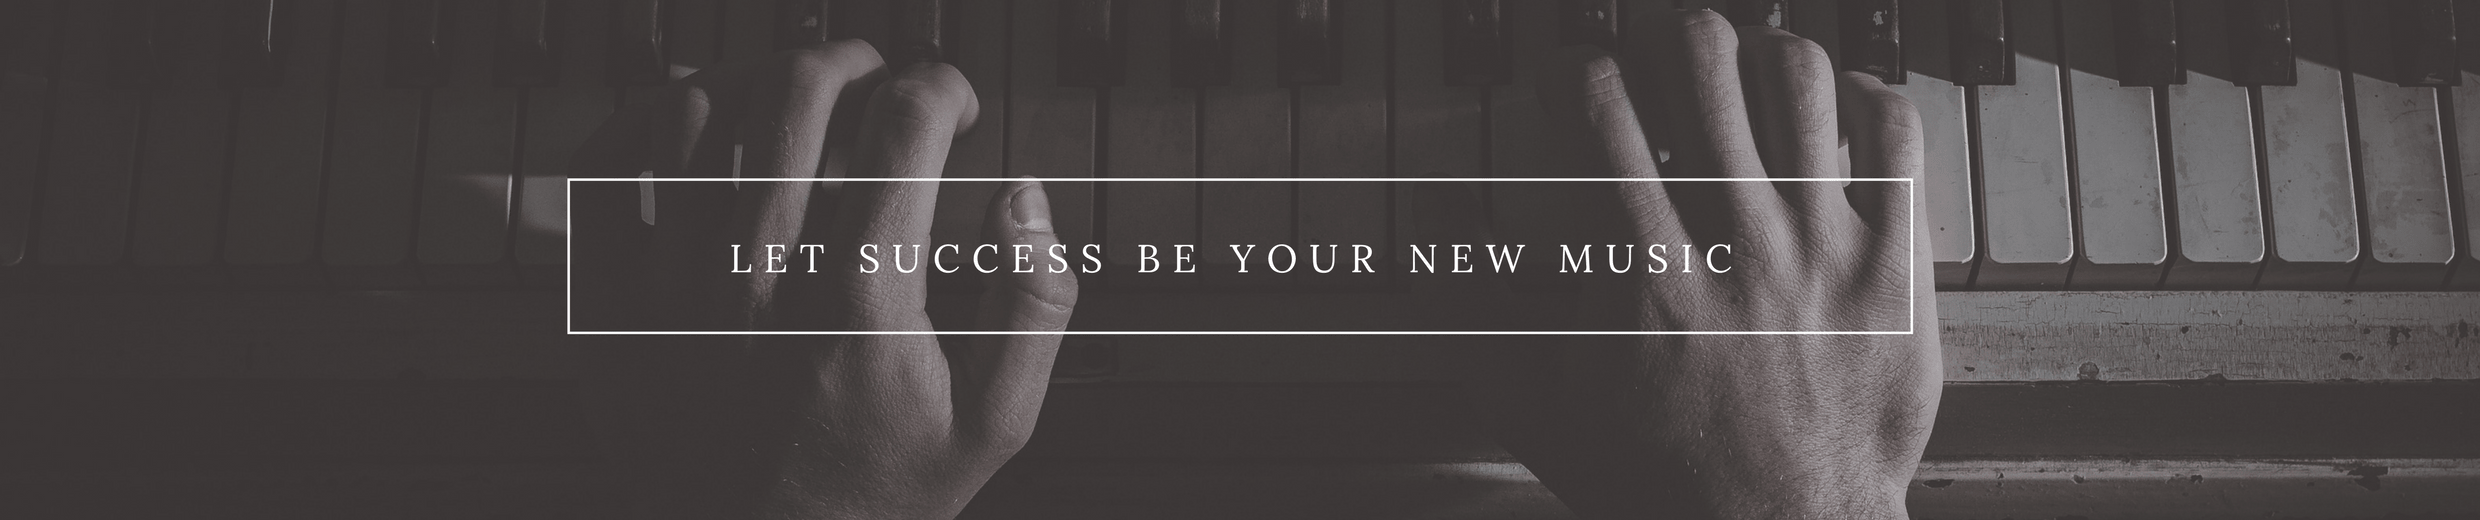 let success be your new music-min